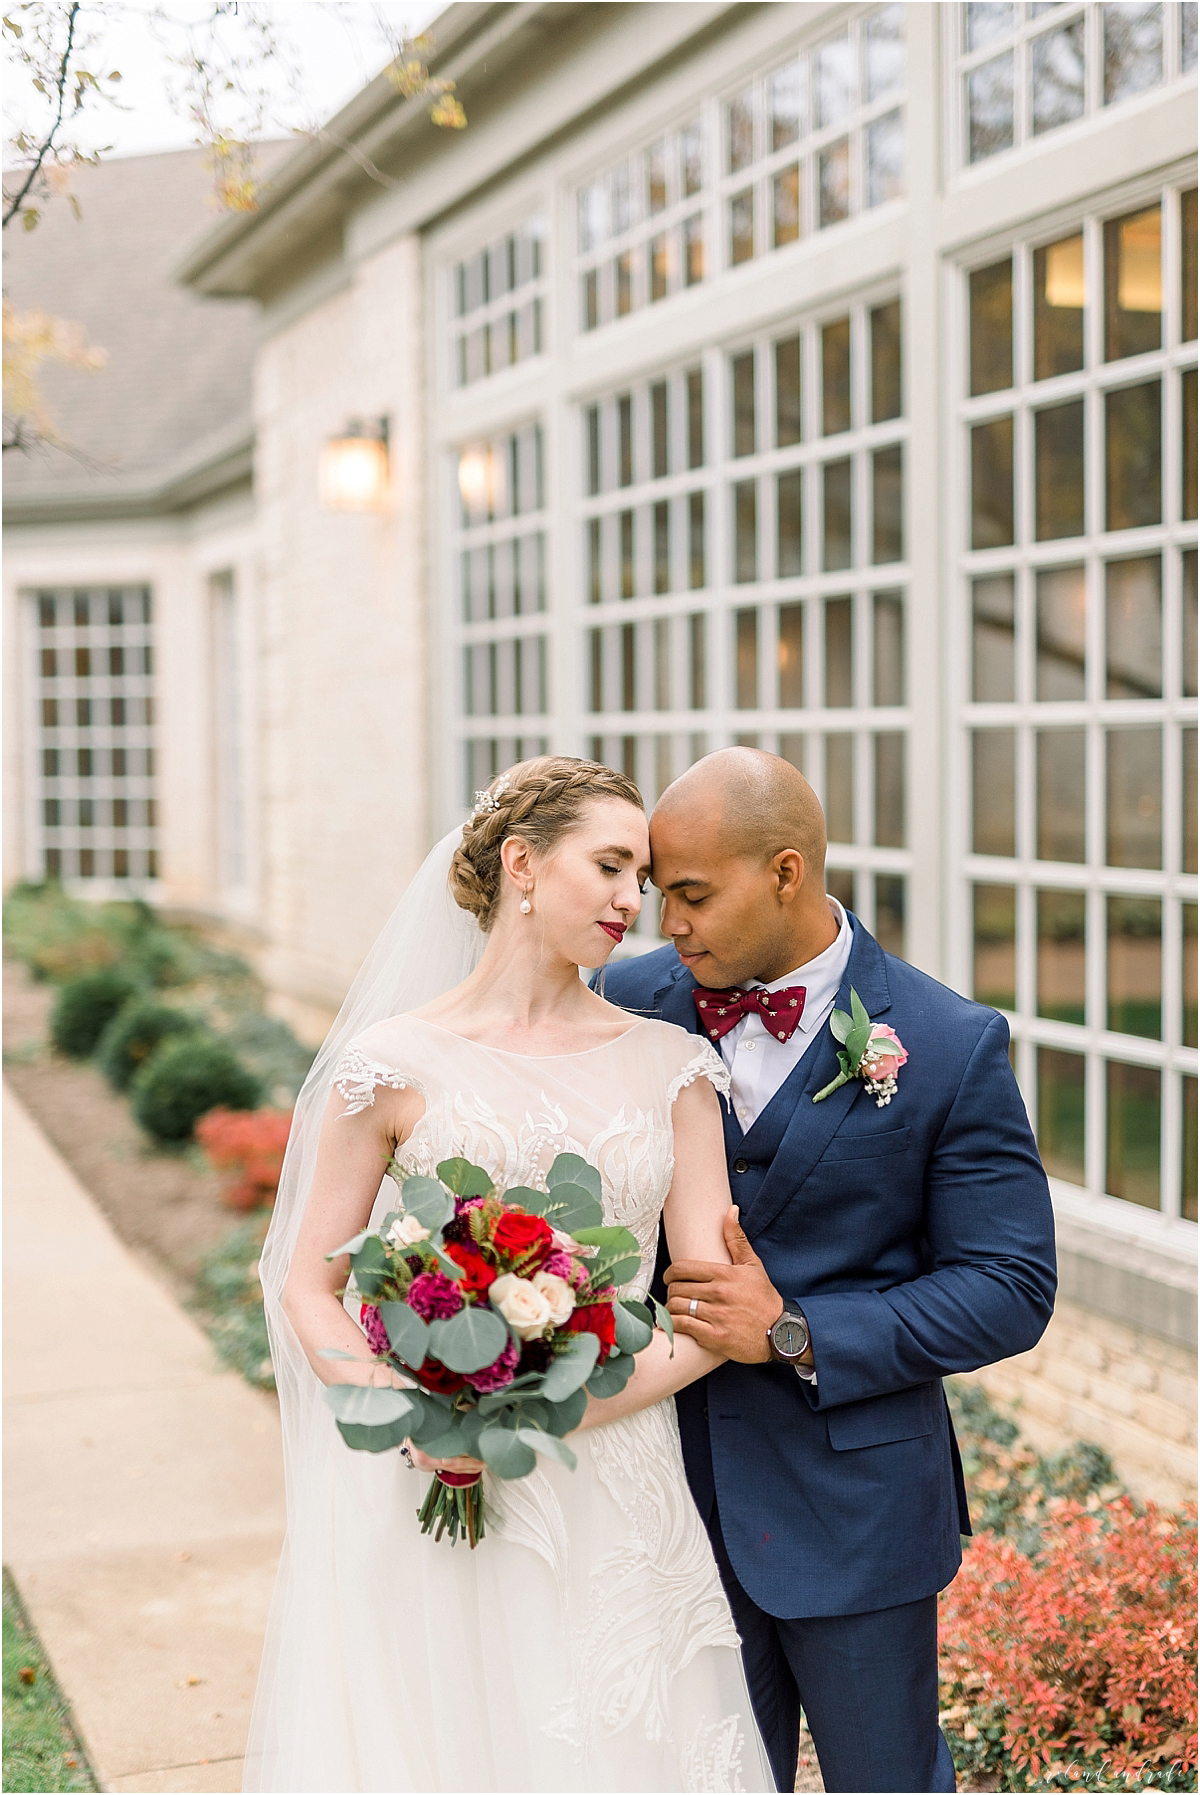 Naperville Country Club Wedding, Chicago Wedding Photographer, Naperville Wedding Photographer, Best Photographer In Aurora, Best Photographer In Chicago_0057.jpg